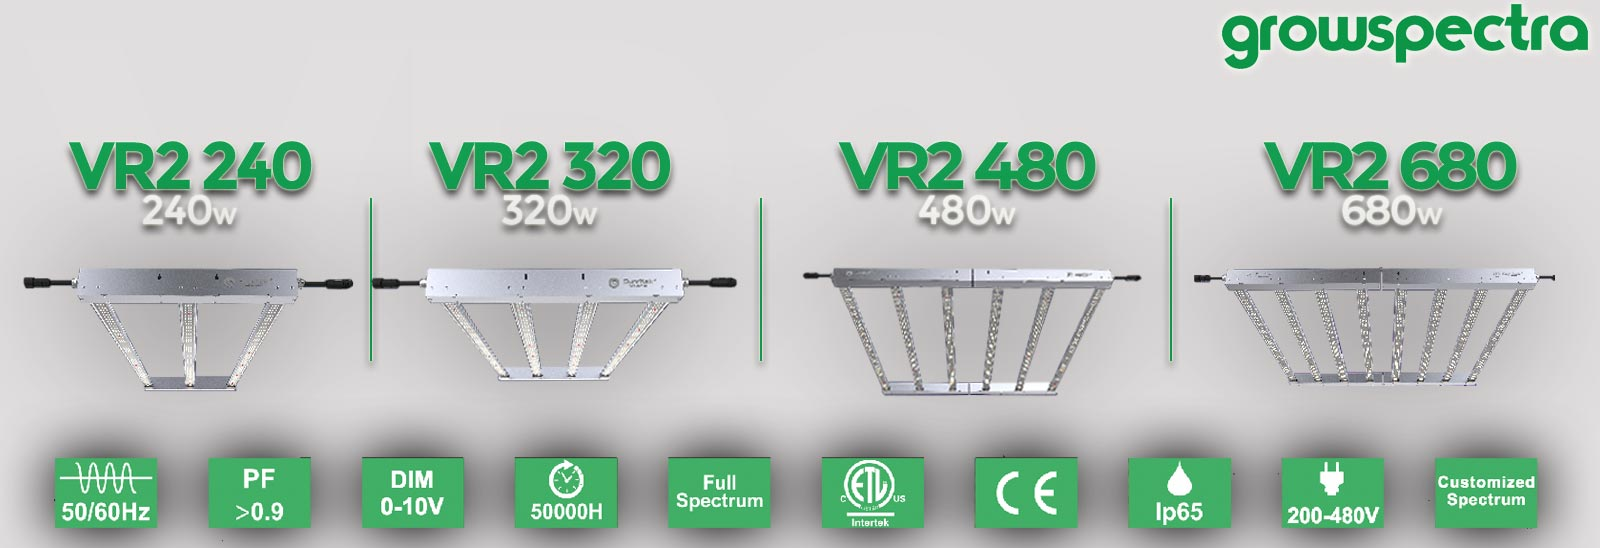 VR2 Series VR2 Series Commercial LED Grow